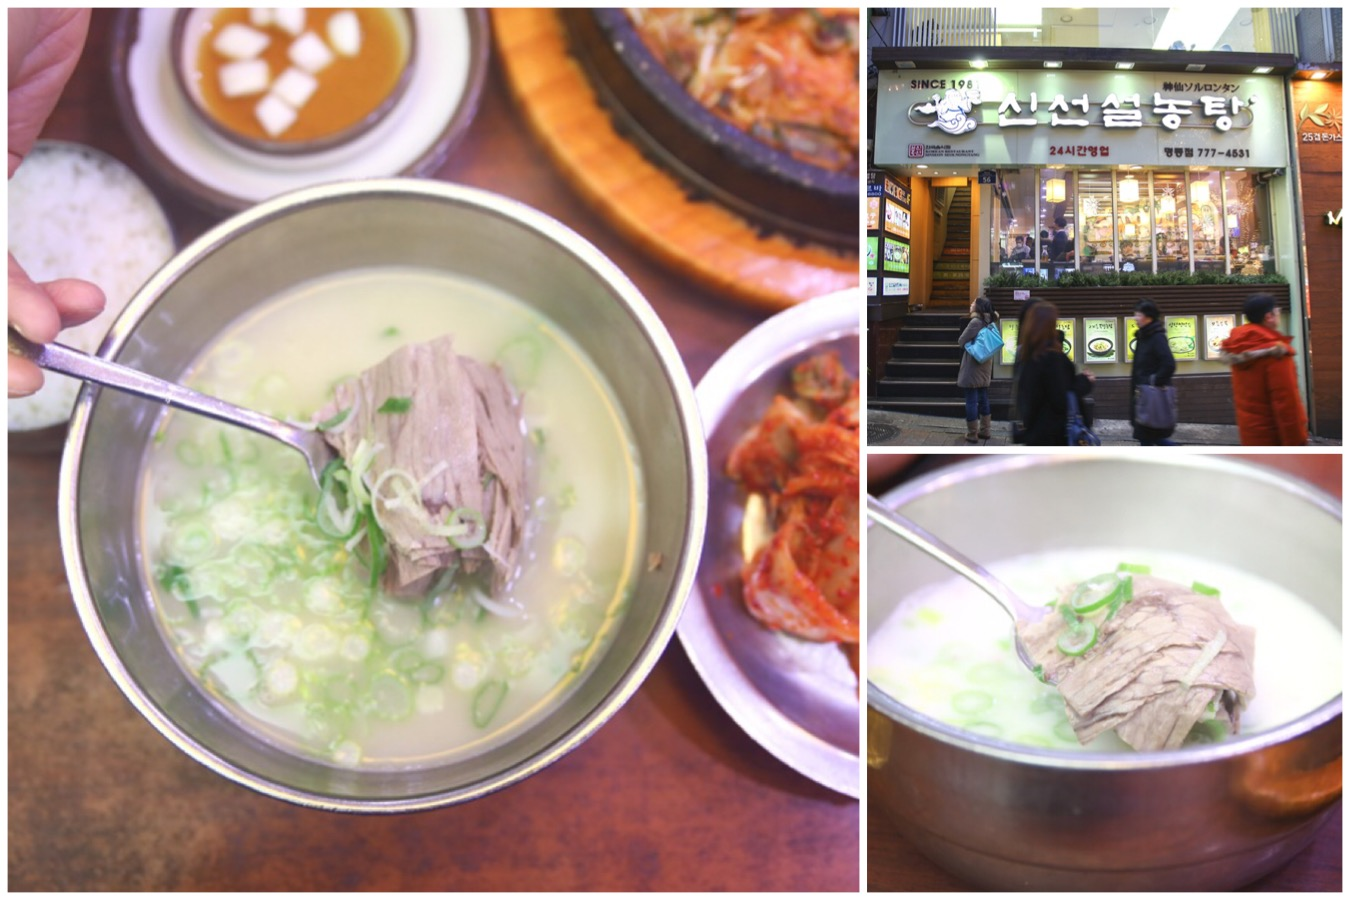 Sinseon Seolleongtang 神仙雪濃湯 – Popular Ox-Bone Soup In Myeongdong Seoul, Opens 24/7